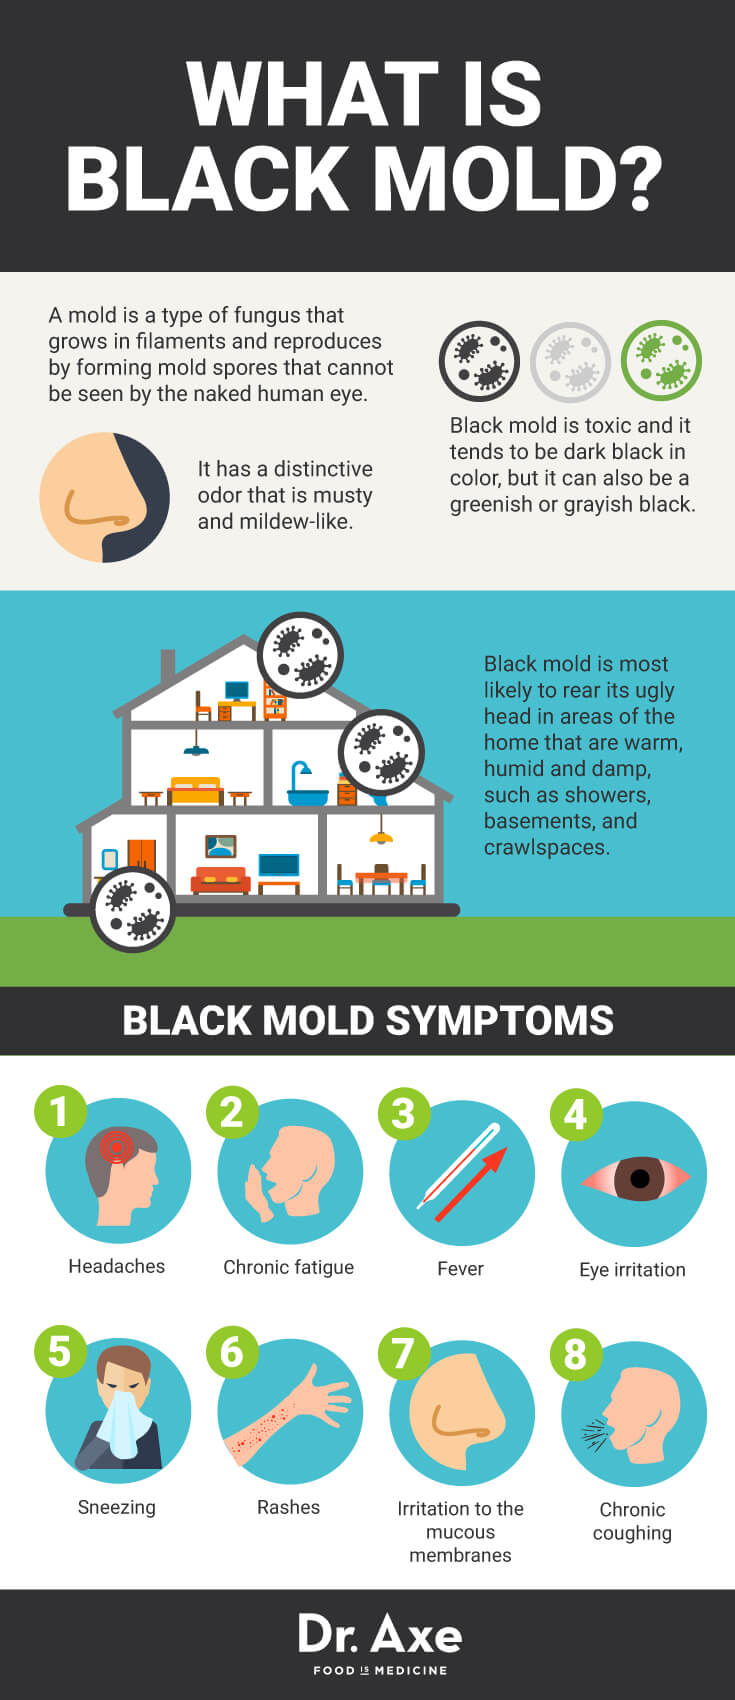 8 Signs You Need A Black Mold Detox In 2020 With Images Black Mold Exposure Mold Exposure Black Mold Symptoms